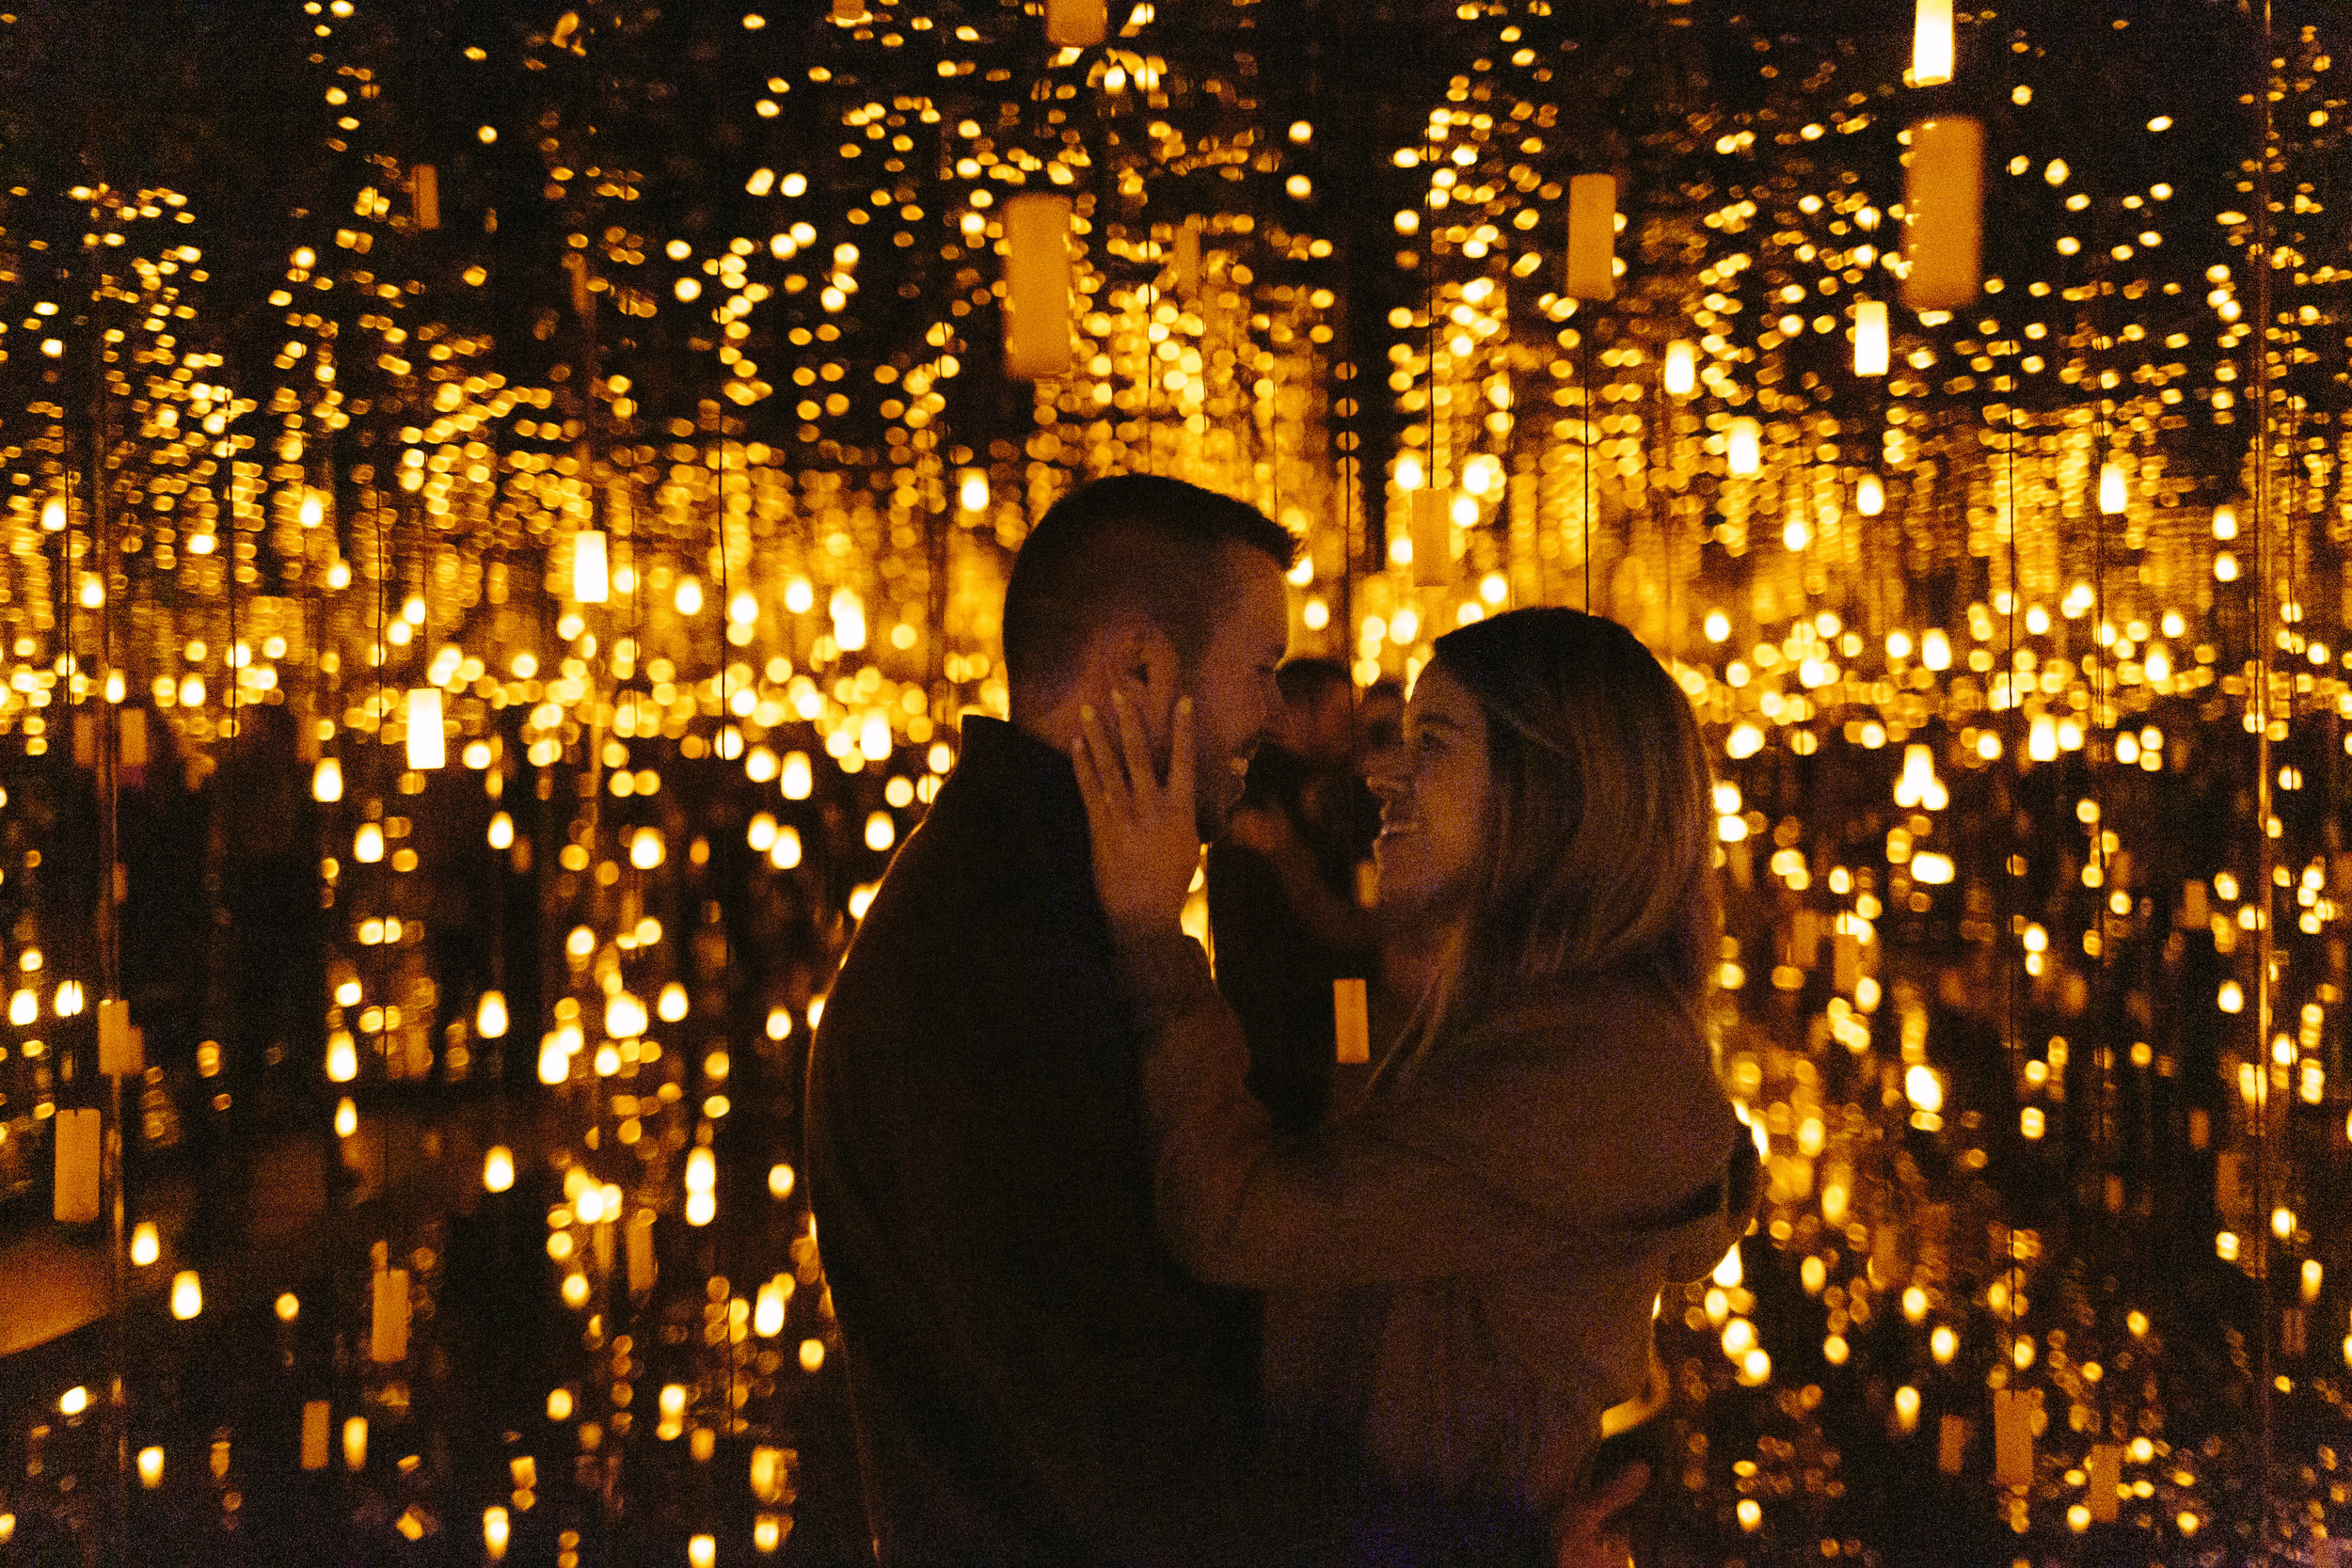 high_museum_infinity_mirrors_Yayoi_Kusama_proposal_amazing_atlanta_real_couple_engagement_ideas_epic_1074.jpg